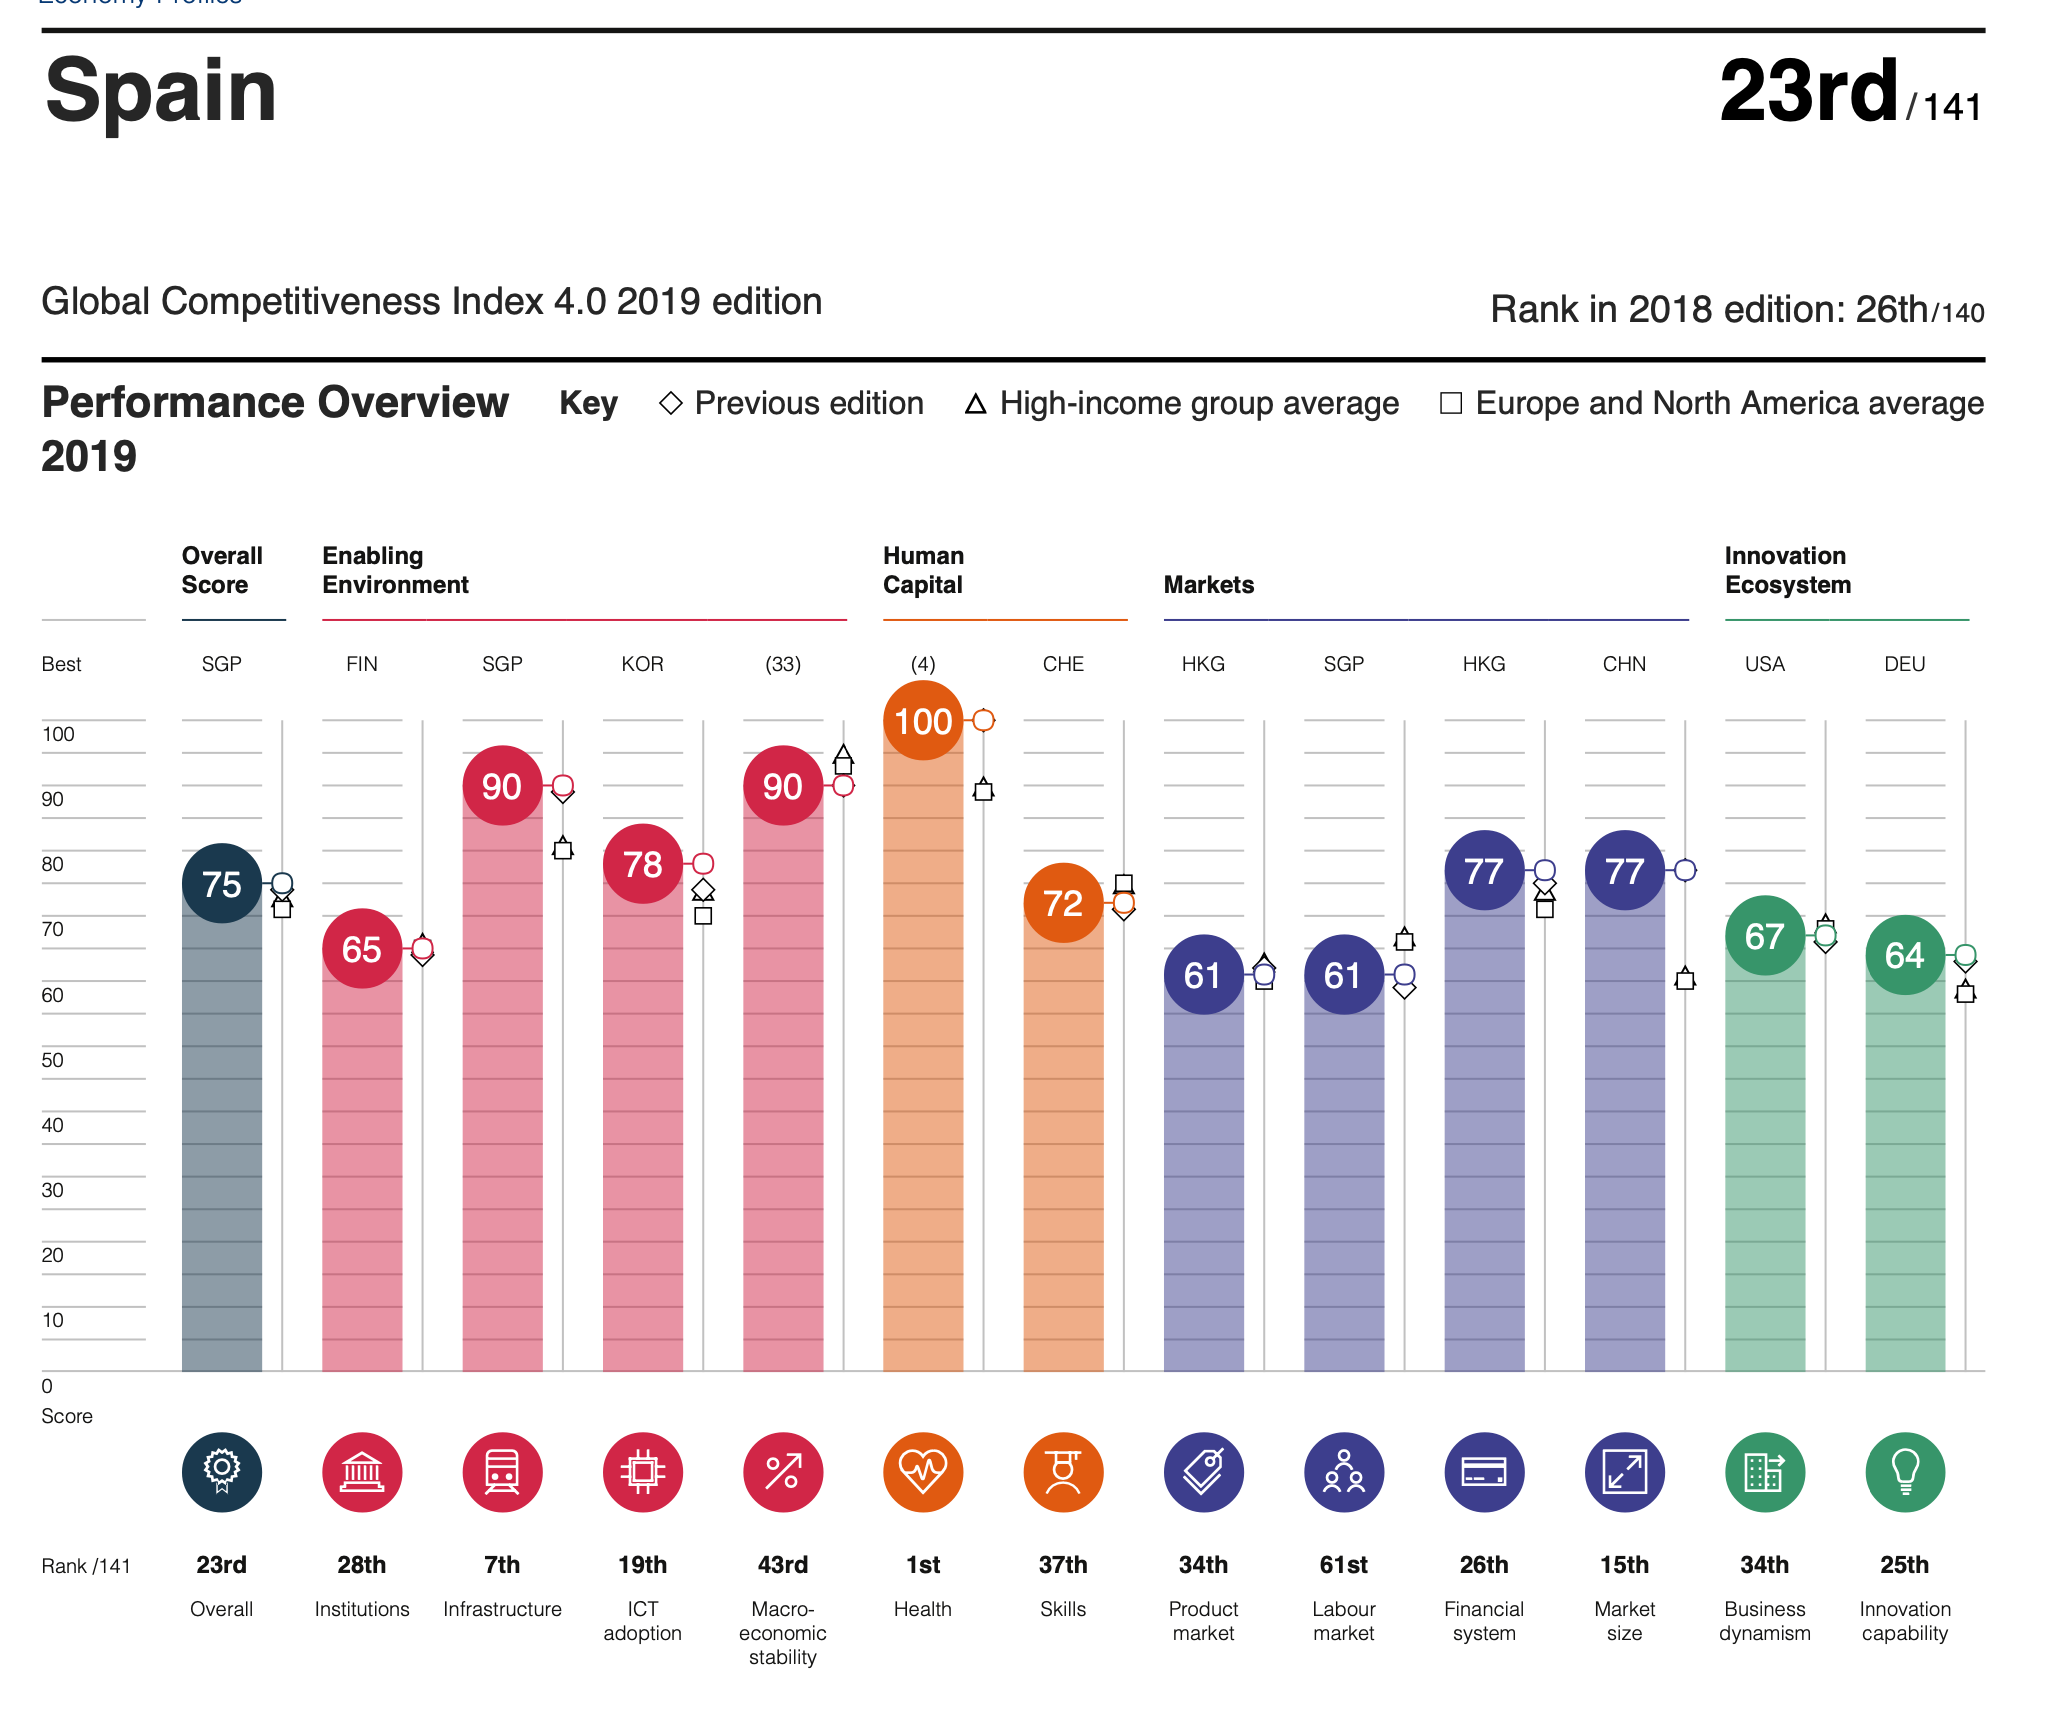 Global Competitiveness Index from 2019 showing Spain's healthcare ranked number 1 in the world.